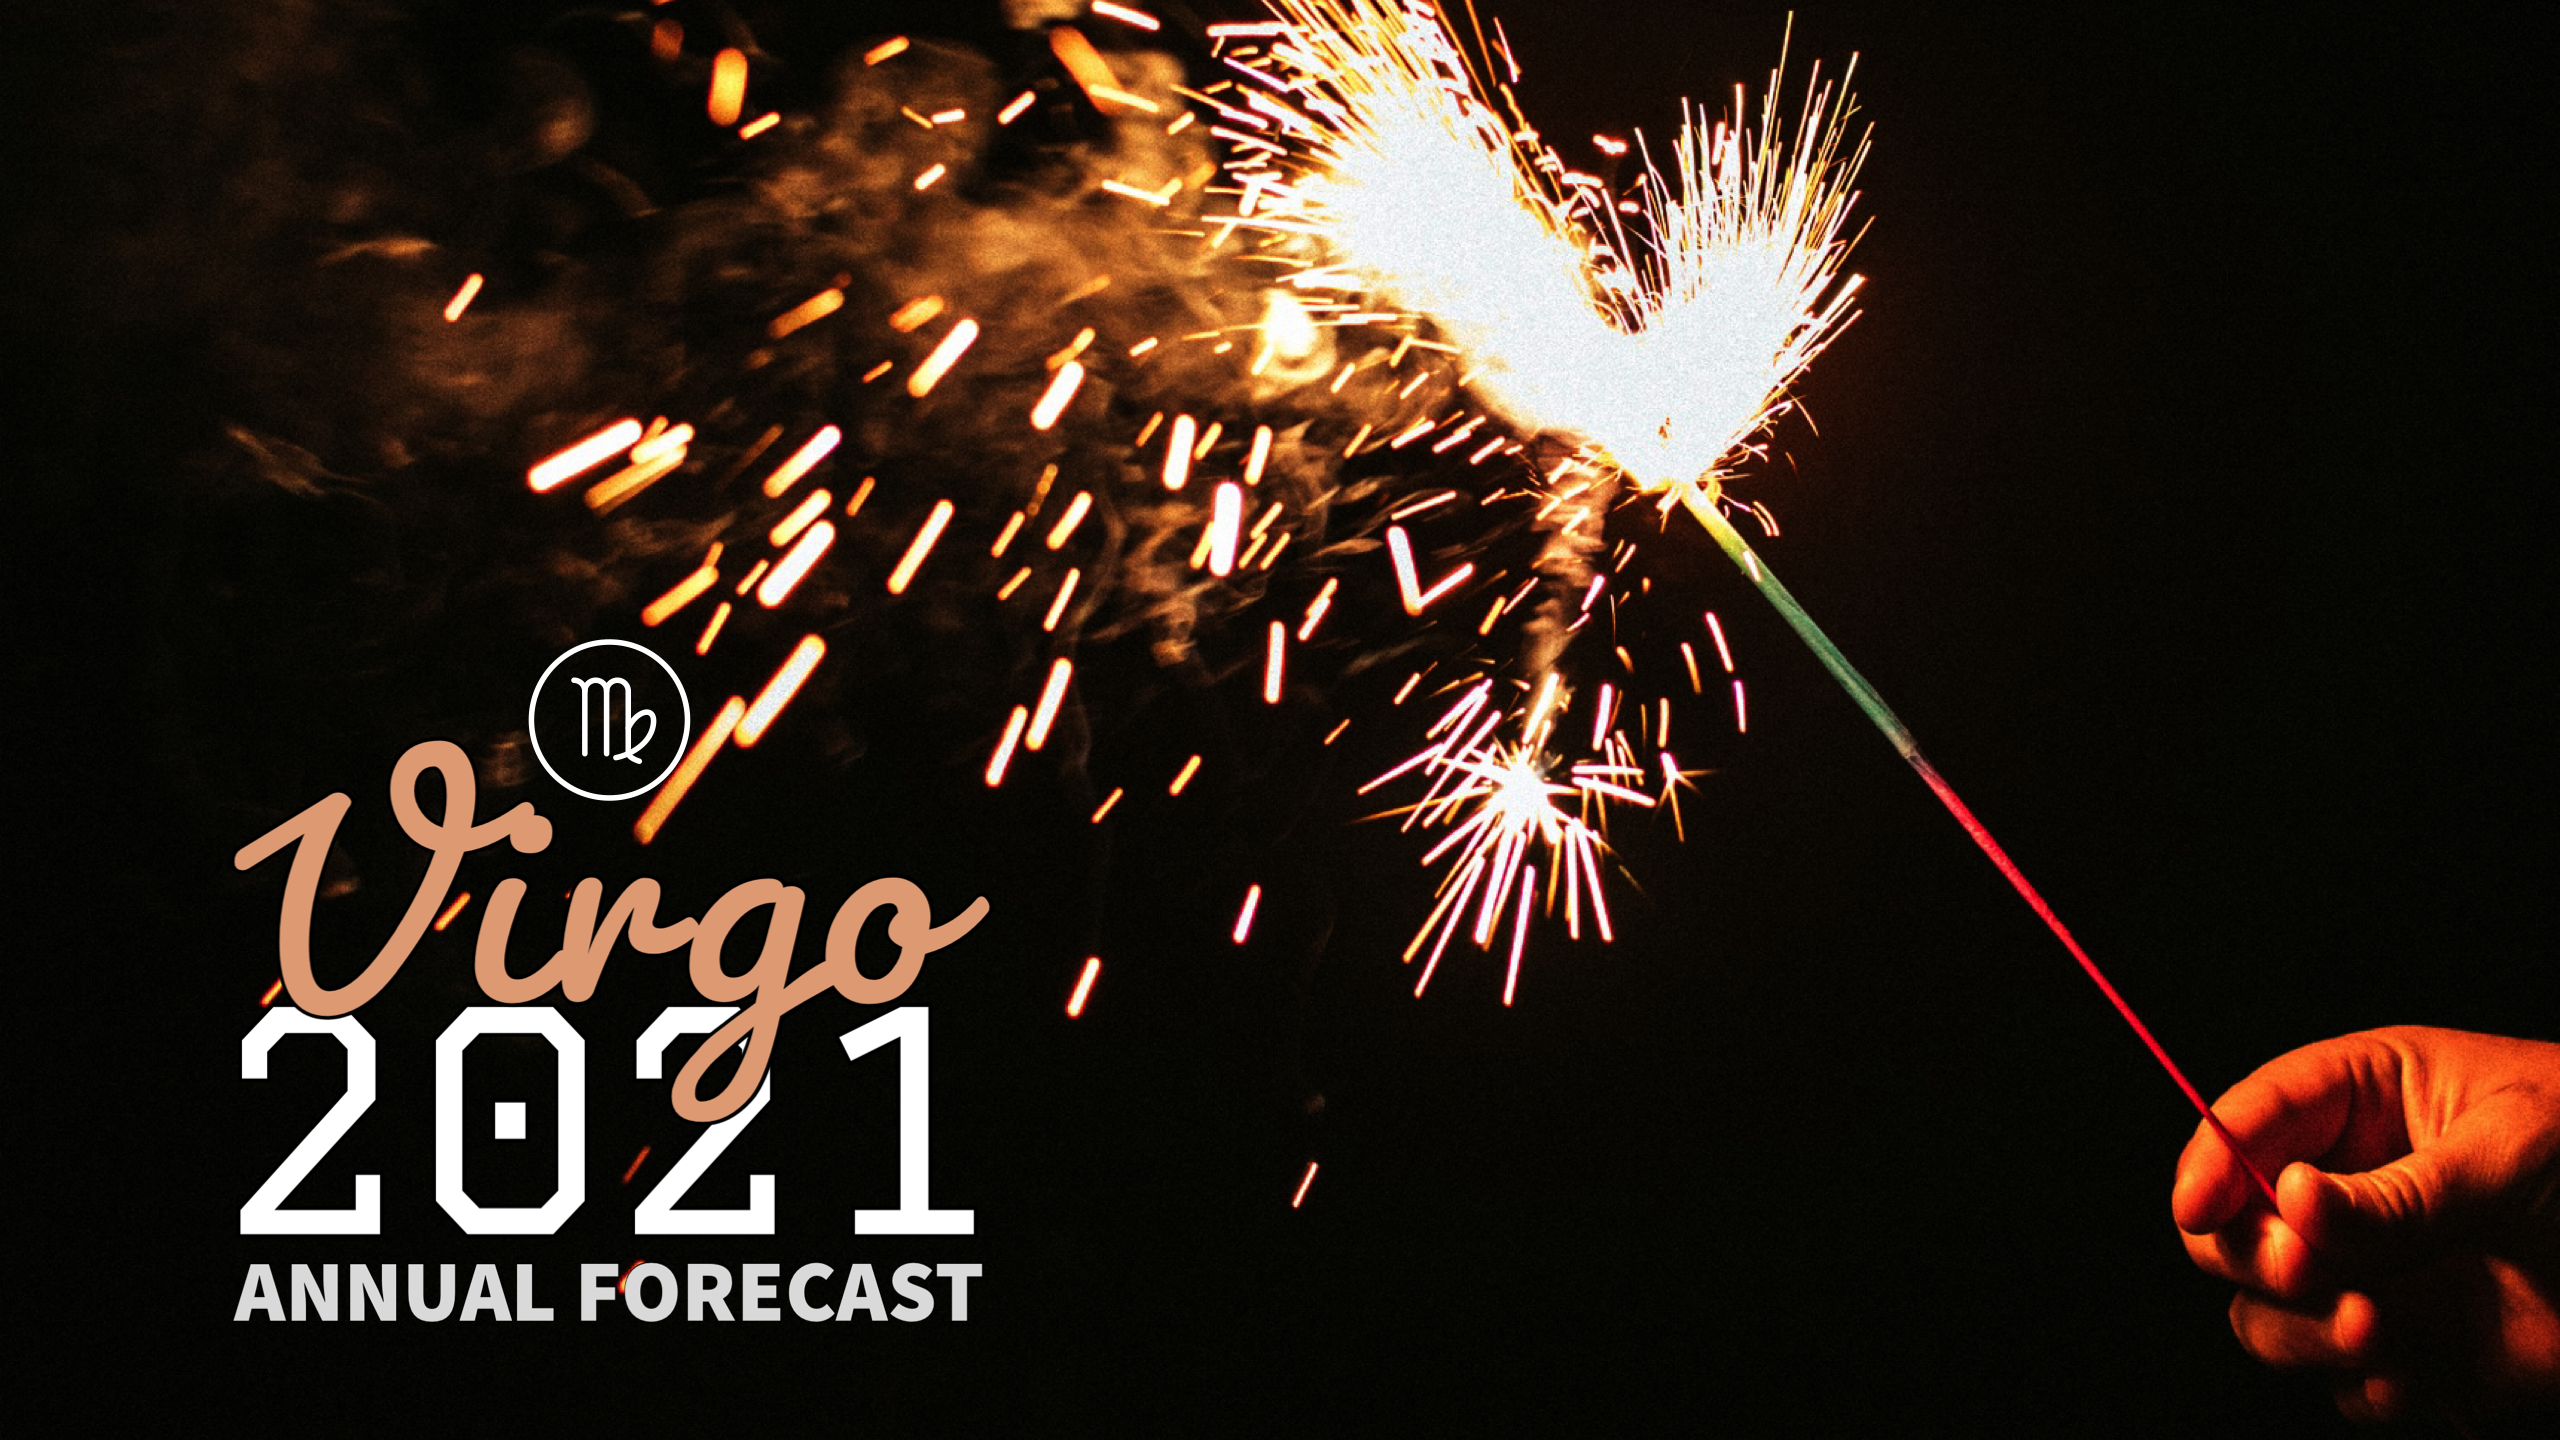 Annual Forecast 2021:Banner:06 Virgo